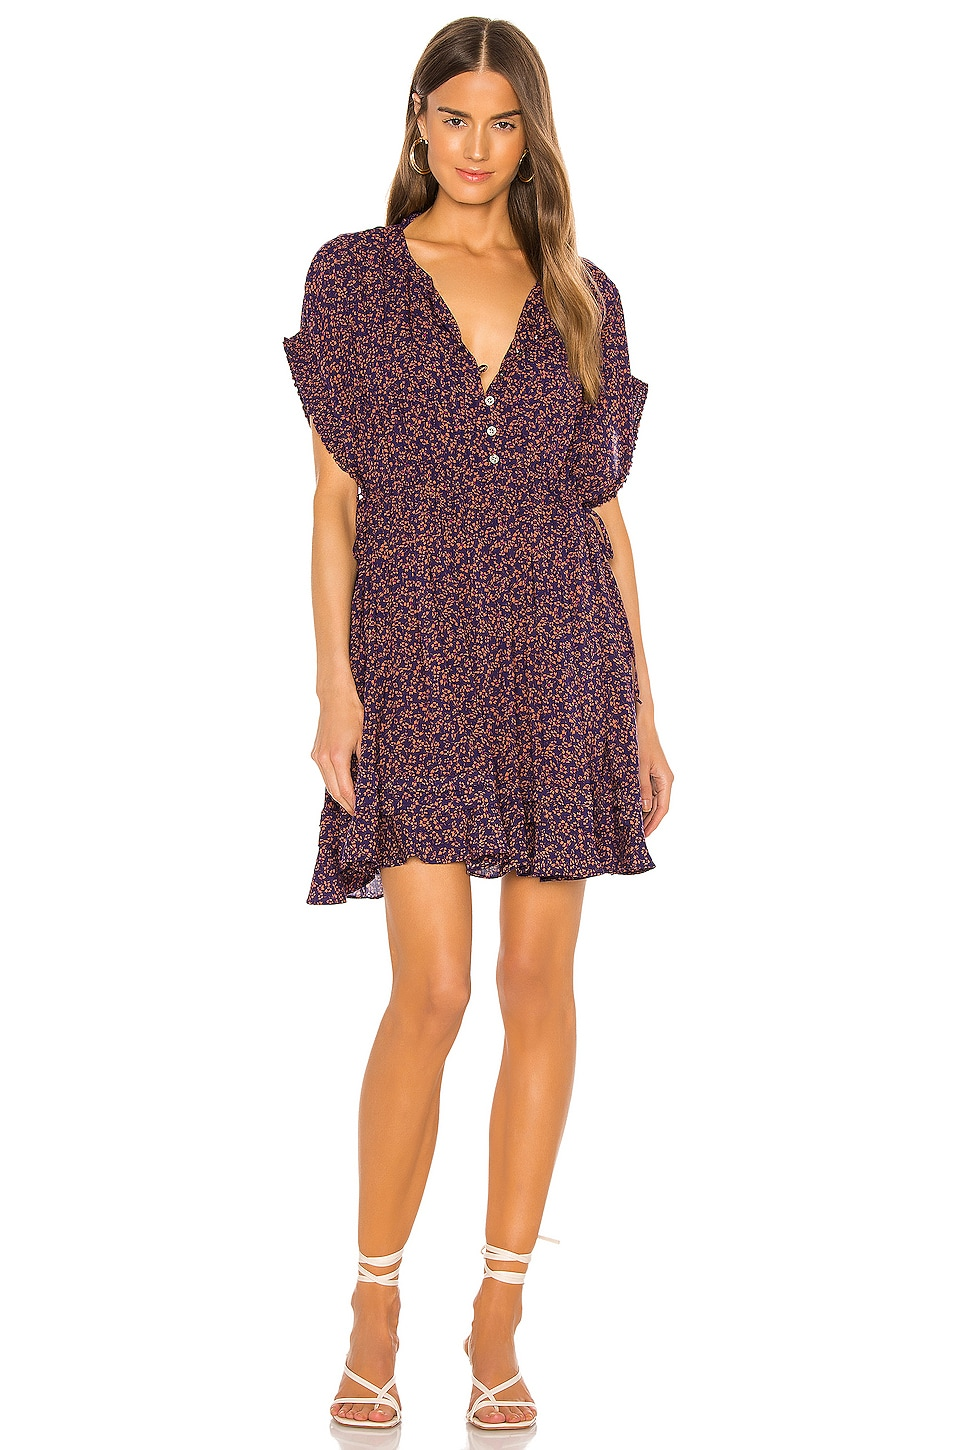 One Fine Day Mini Dress             Free People                                                                                                                                         Sale price:                                                                       CA$ 101.11                                                                  Previous price:                                                                       CA$ 179.74 8